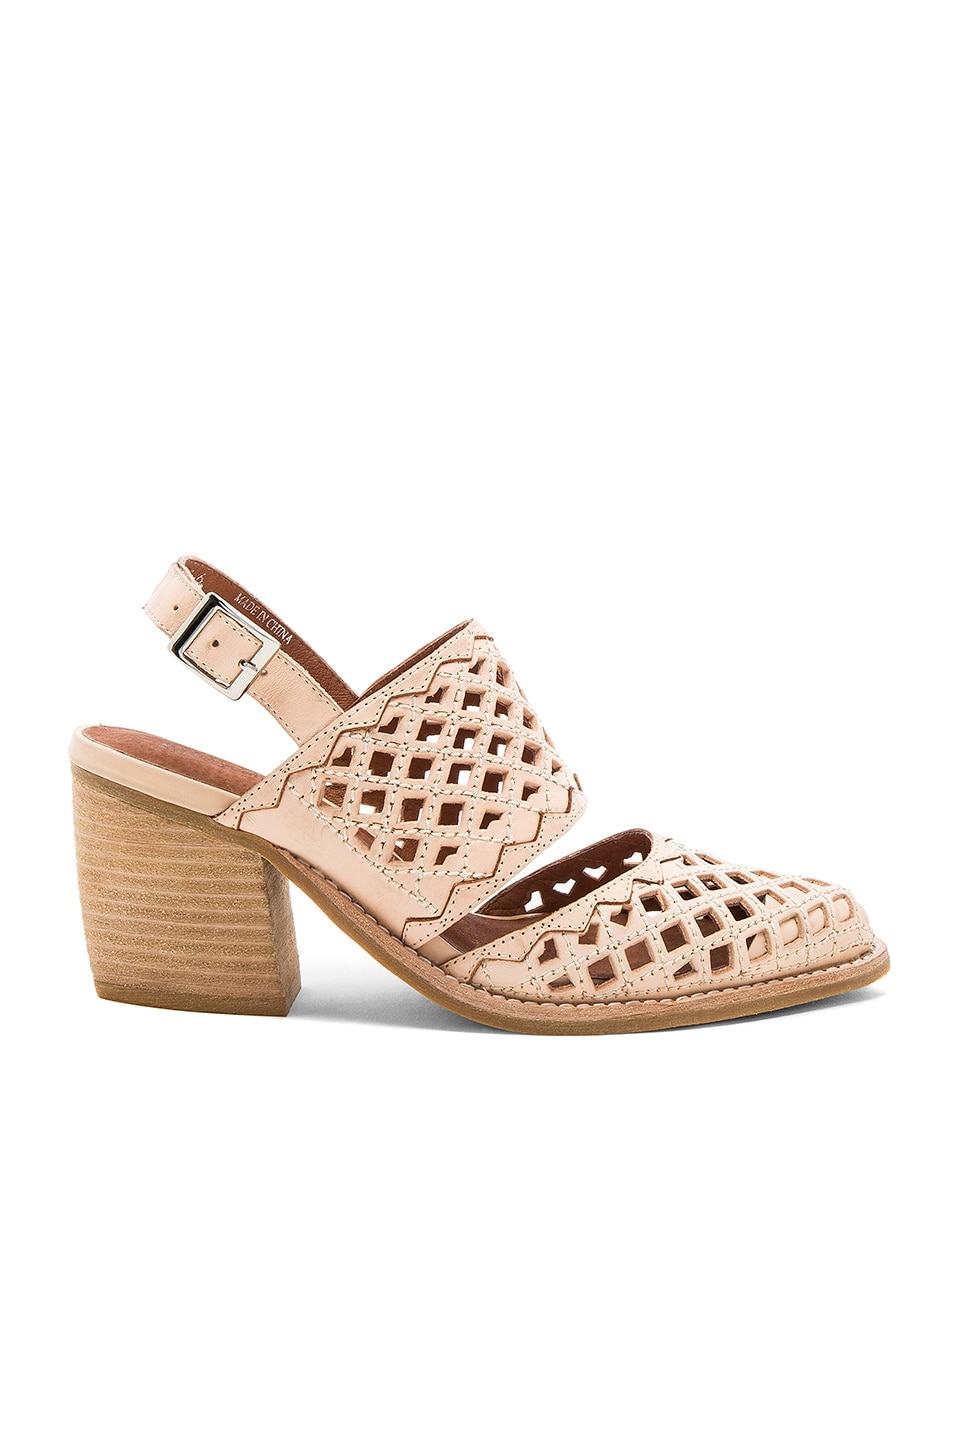 Jeffrey Campbell Cathica Sandal in Natural